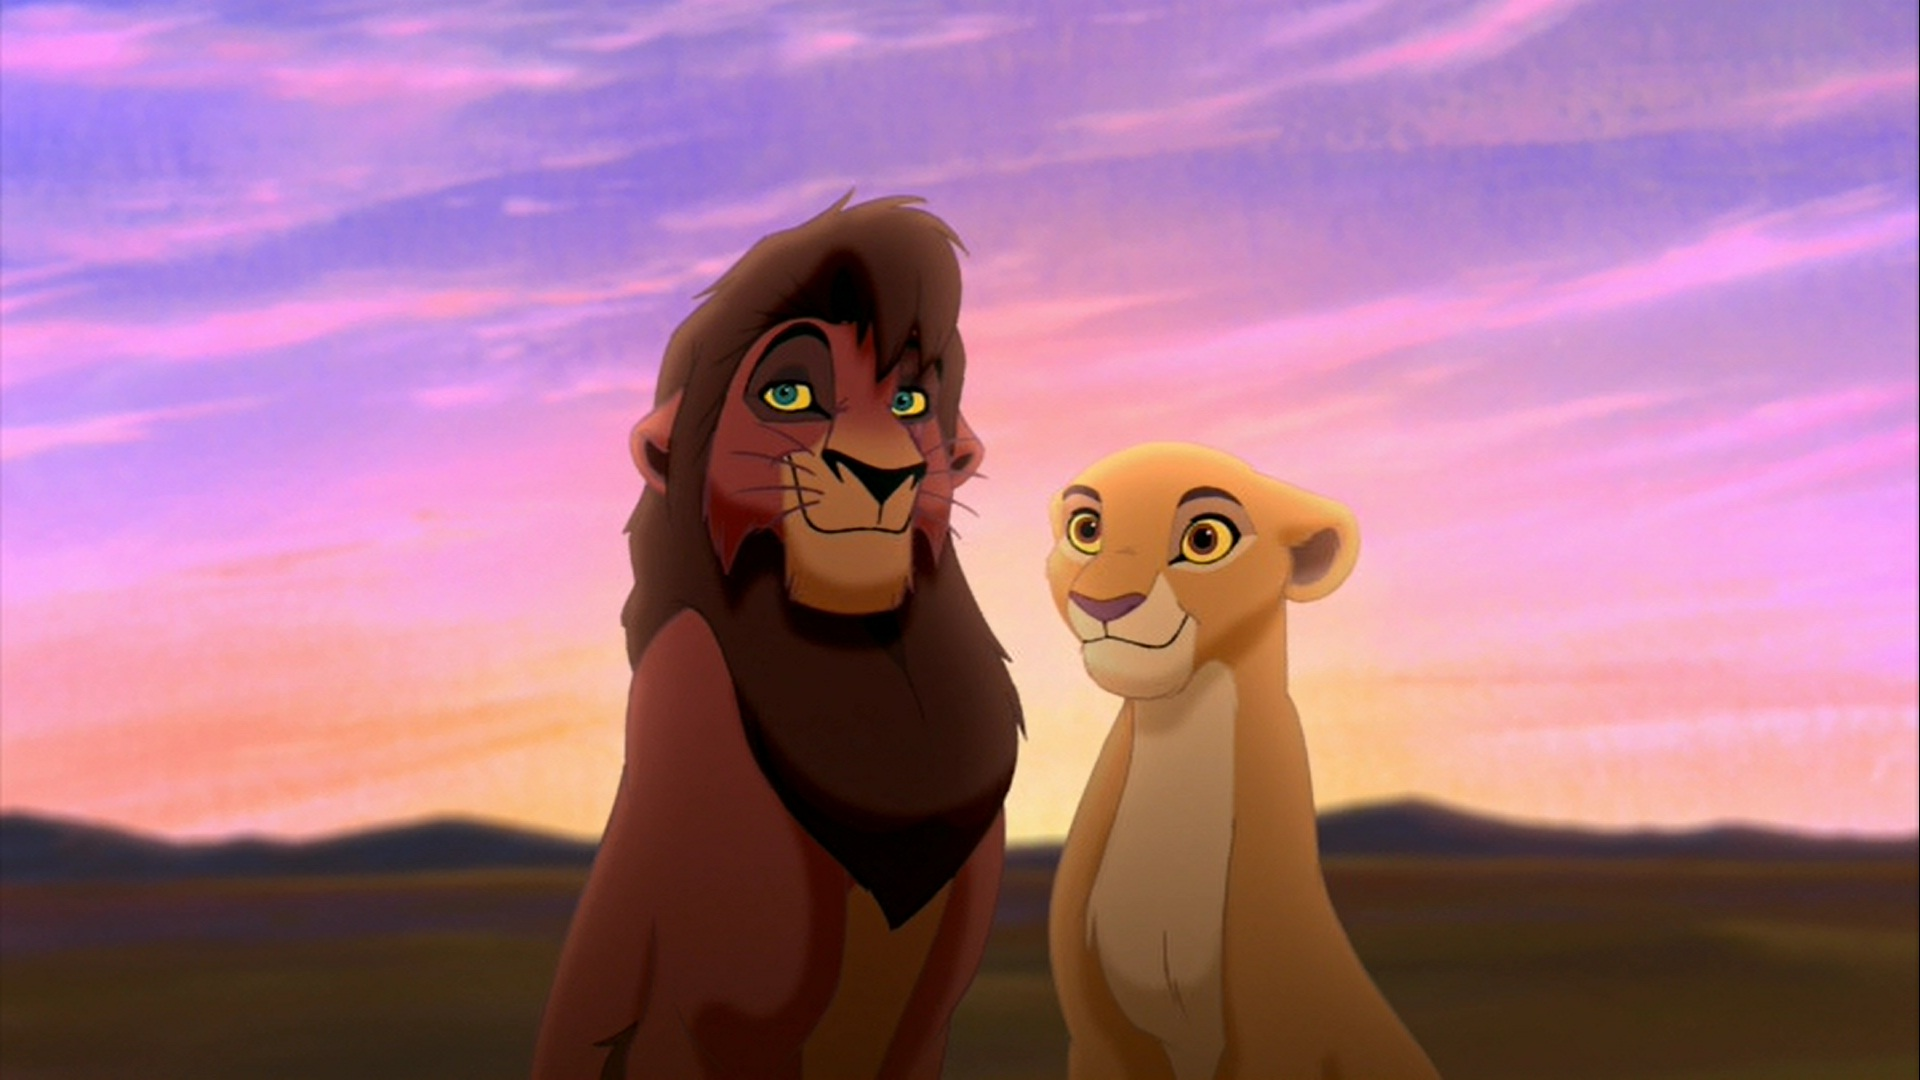 Kovu and Kiara HD Wallpaper - The Lion King Wallpaper ...